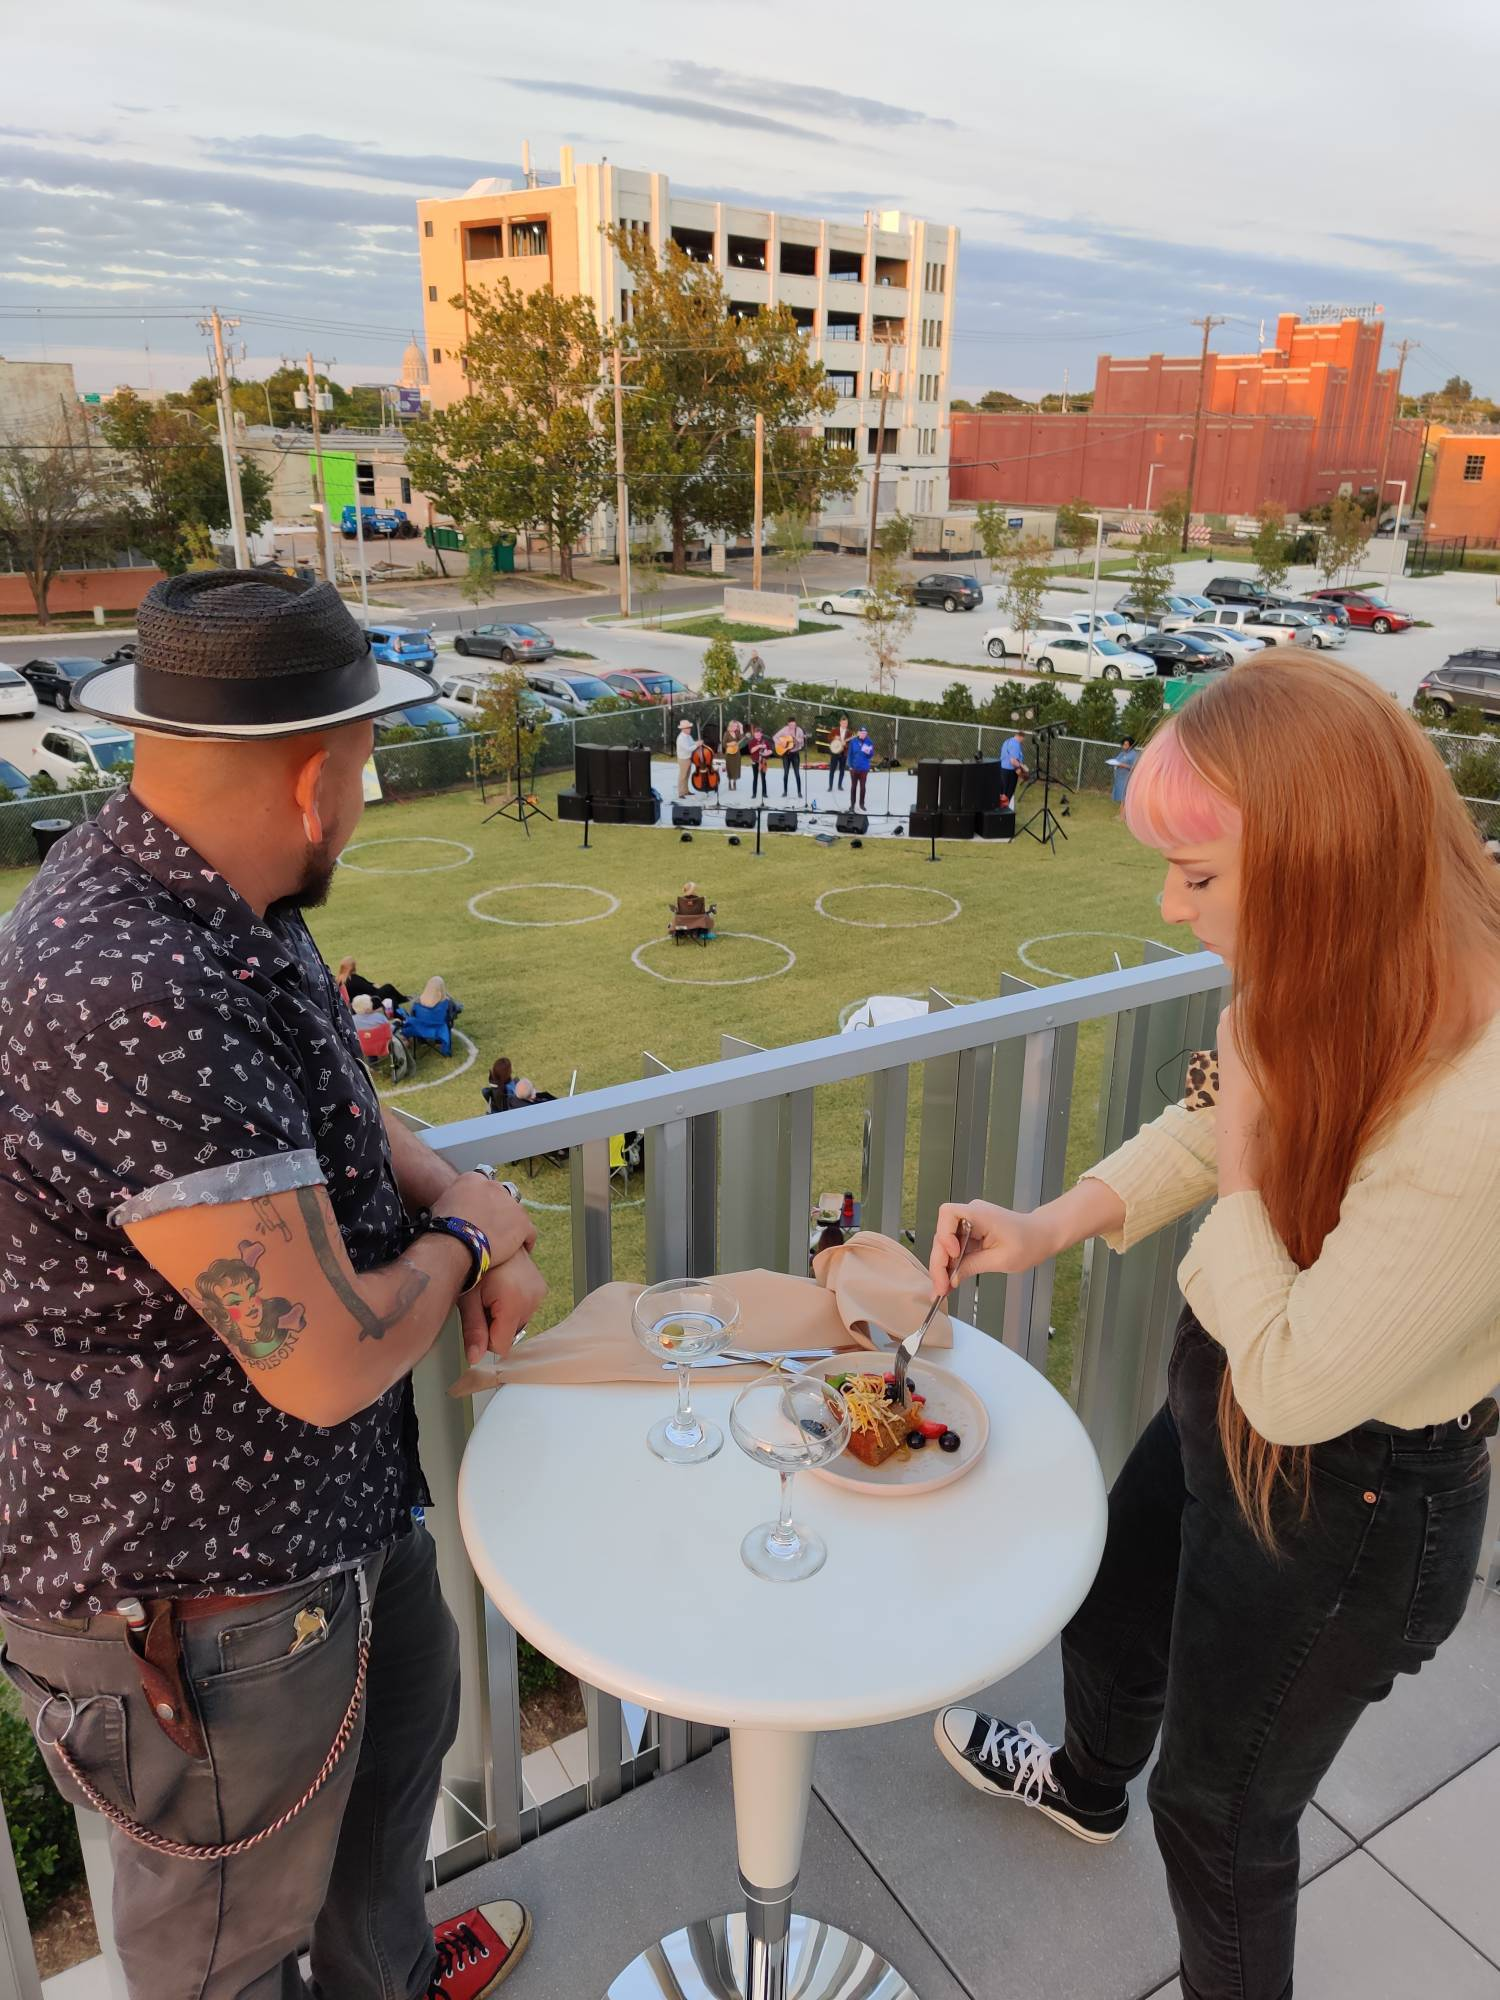 Two people eat and drink outdoors, overlooking a concert on a green lawn